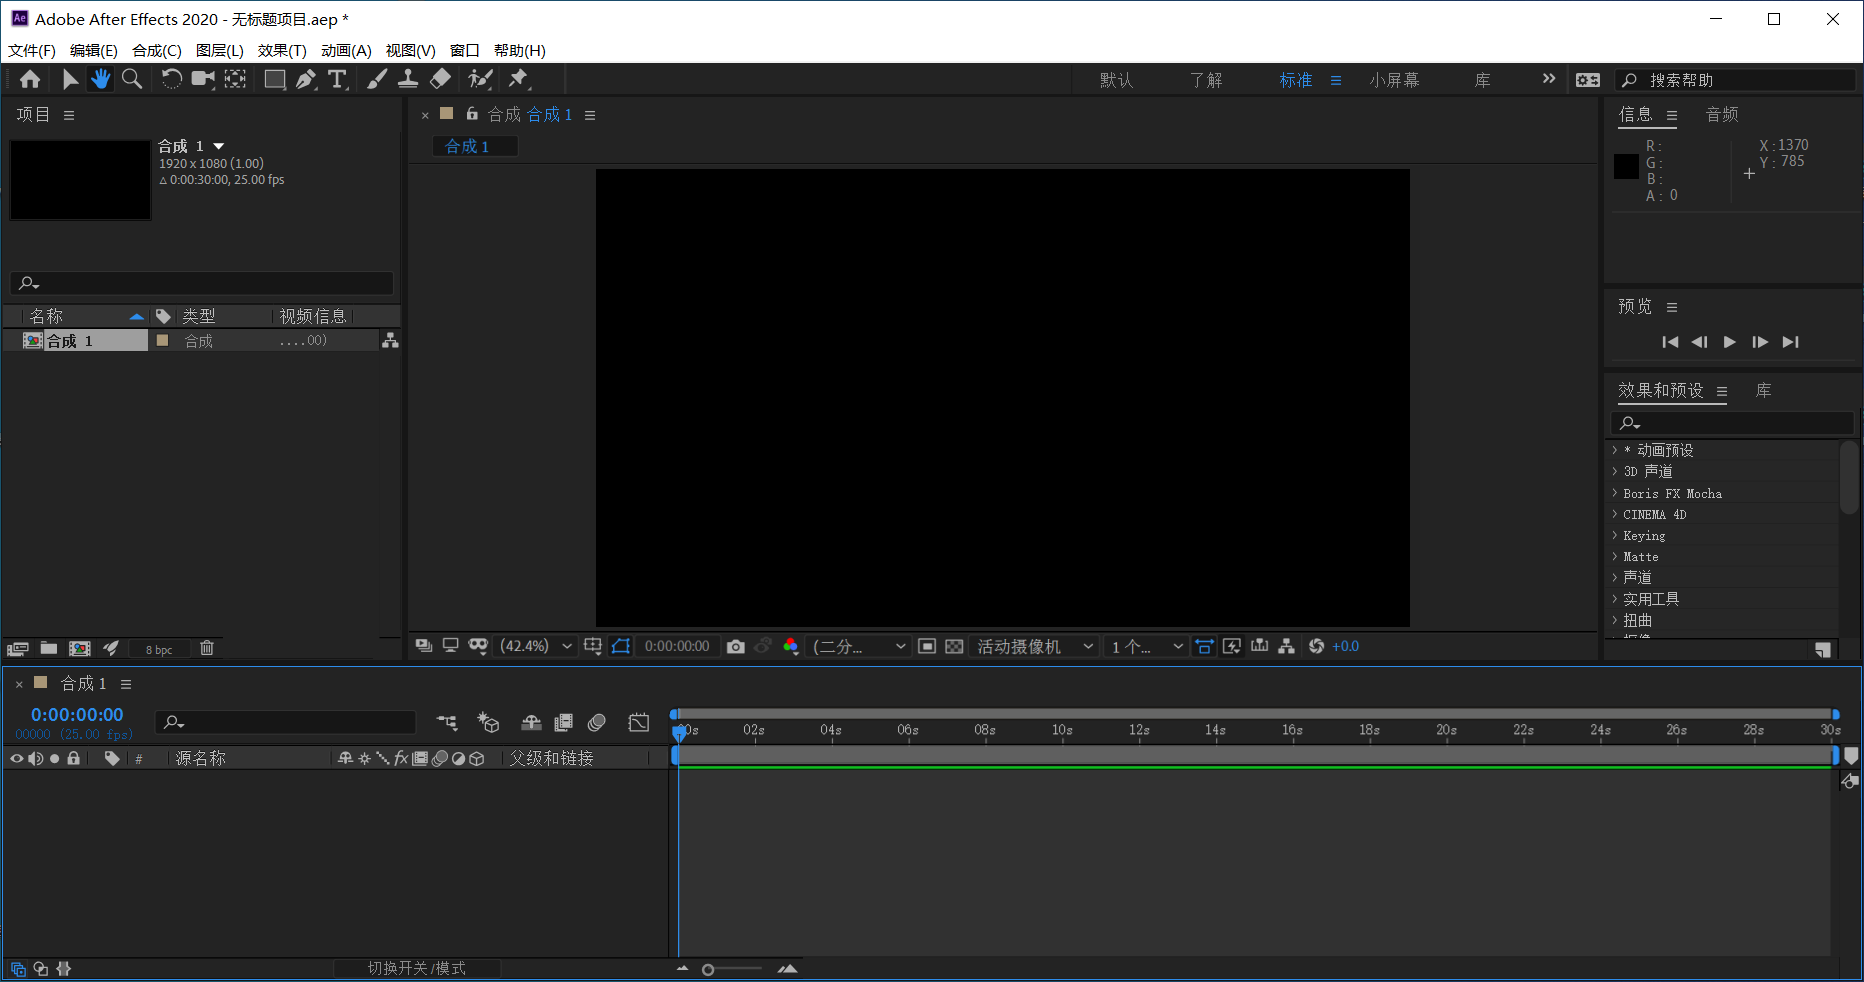 Adobe After Effects 2020 破解版.png